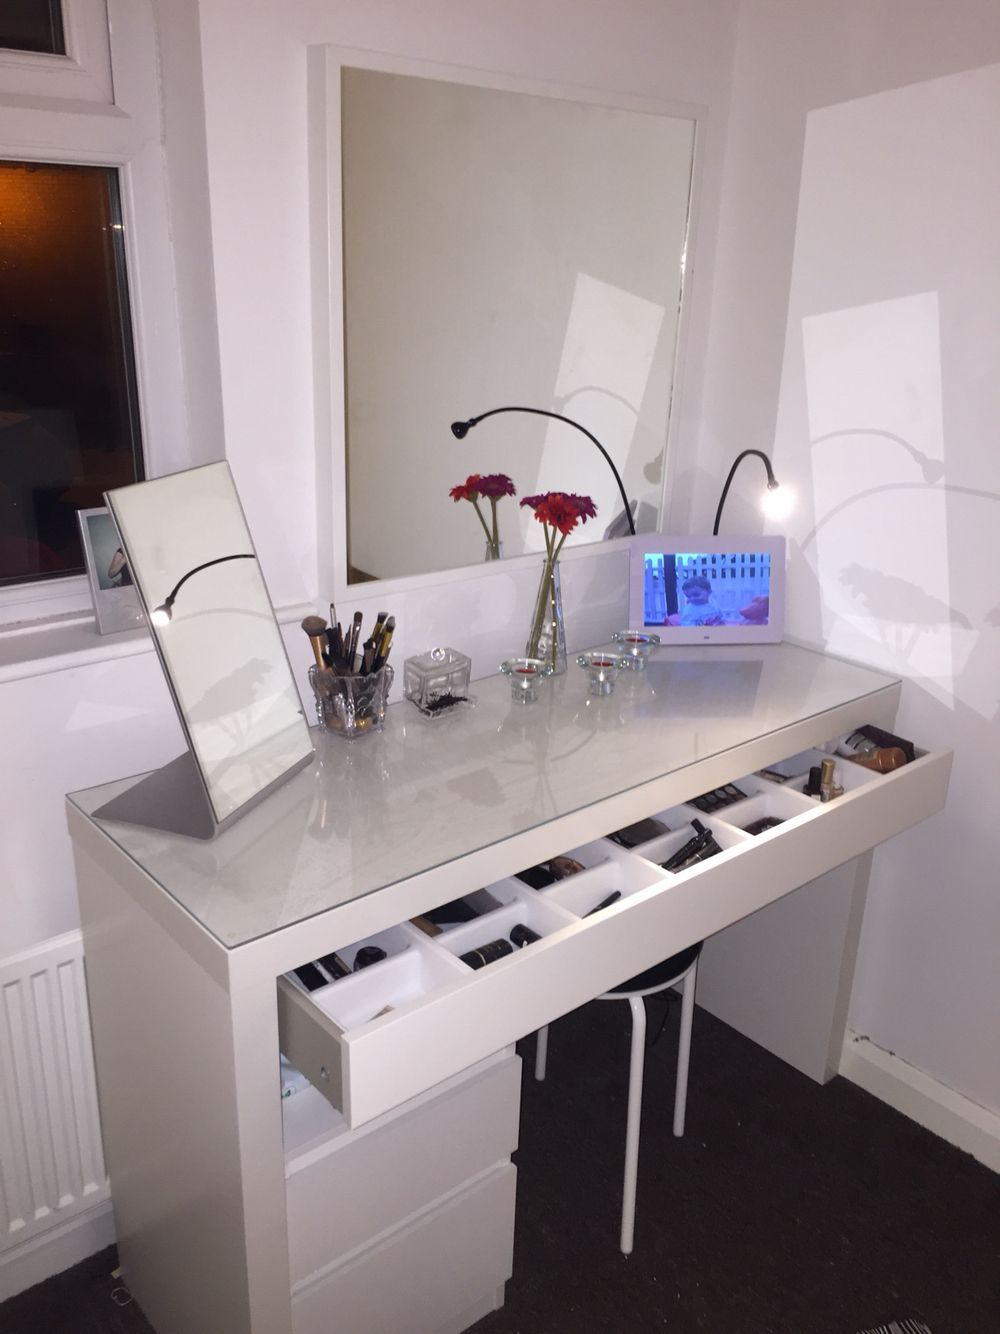 Dressing Table Idea White Dressing Table With Crystal Handles Silver Mirror And Fairy Lights White Dressing Tables White And Silver Bedroom Pink Bedroom Decor